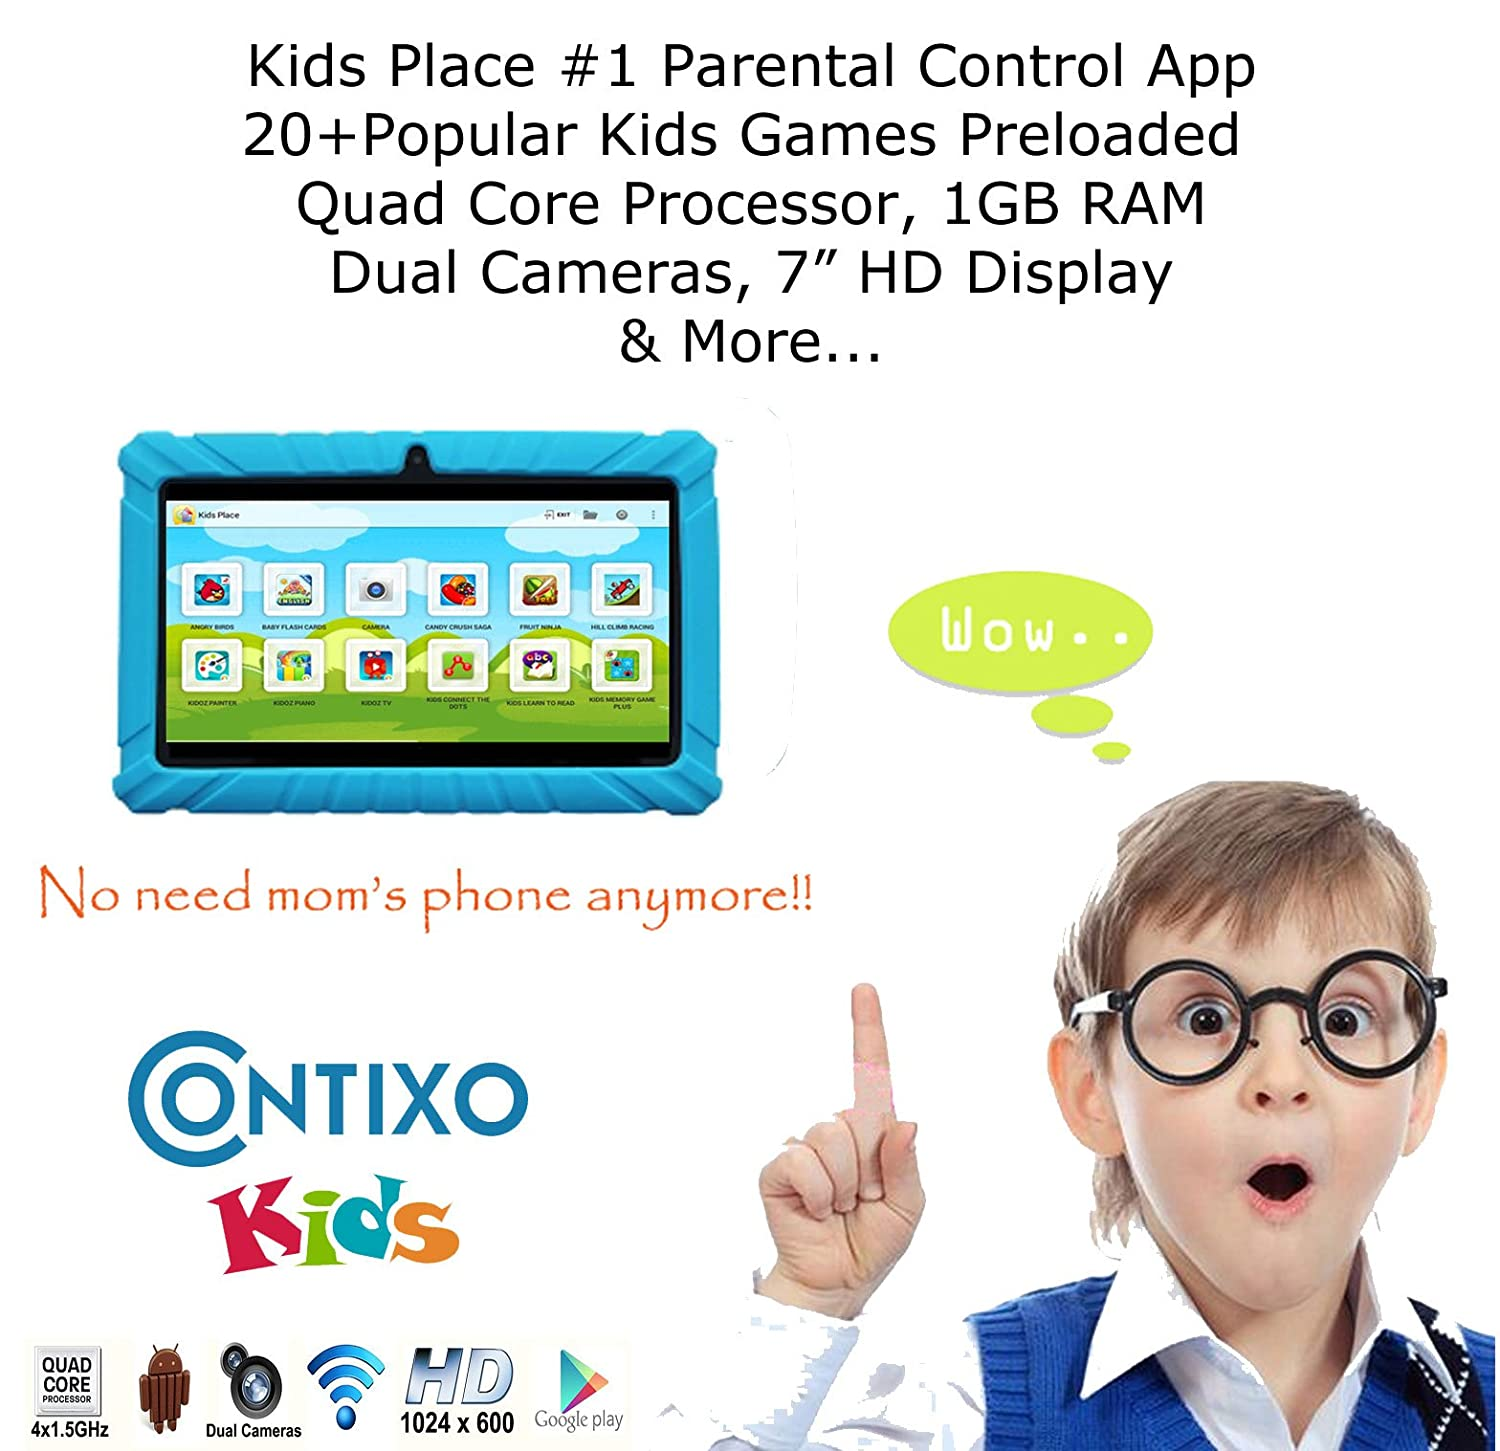 * Memorial Day Special * Contixo 7 Inch Quad Core Android 4.4 Kids Tablet, HD Display 1024x600, 1GB RAM, 8GB Storage, Dual Cameras, Wi-Fi, Kids Place App & Google Play Store Pre-installed, 2015 May Edition, Kid-Proof Case (Blue)